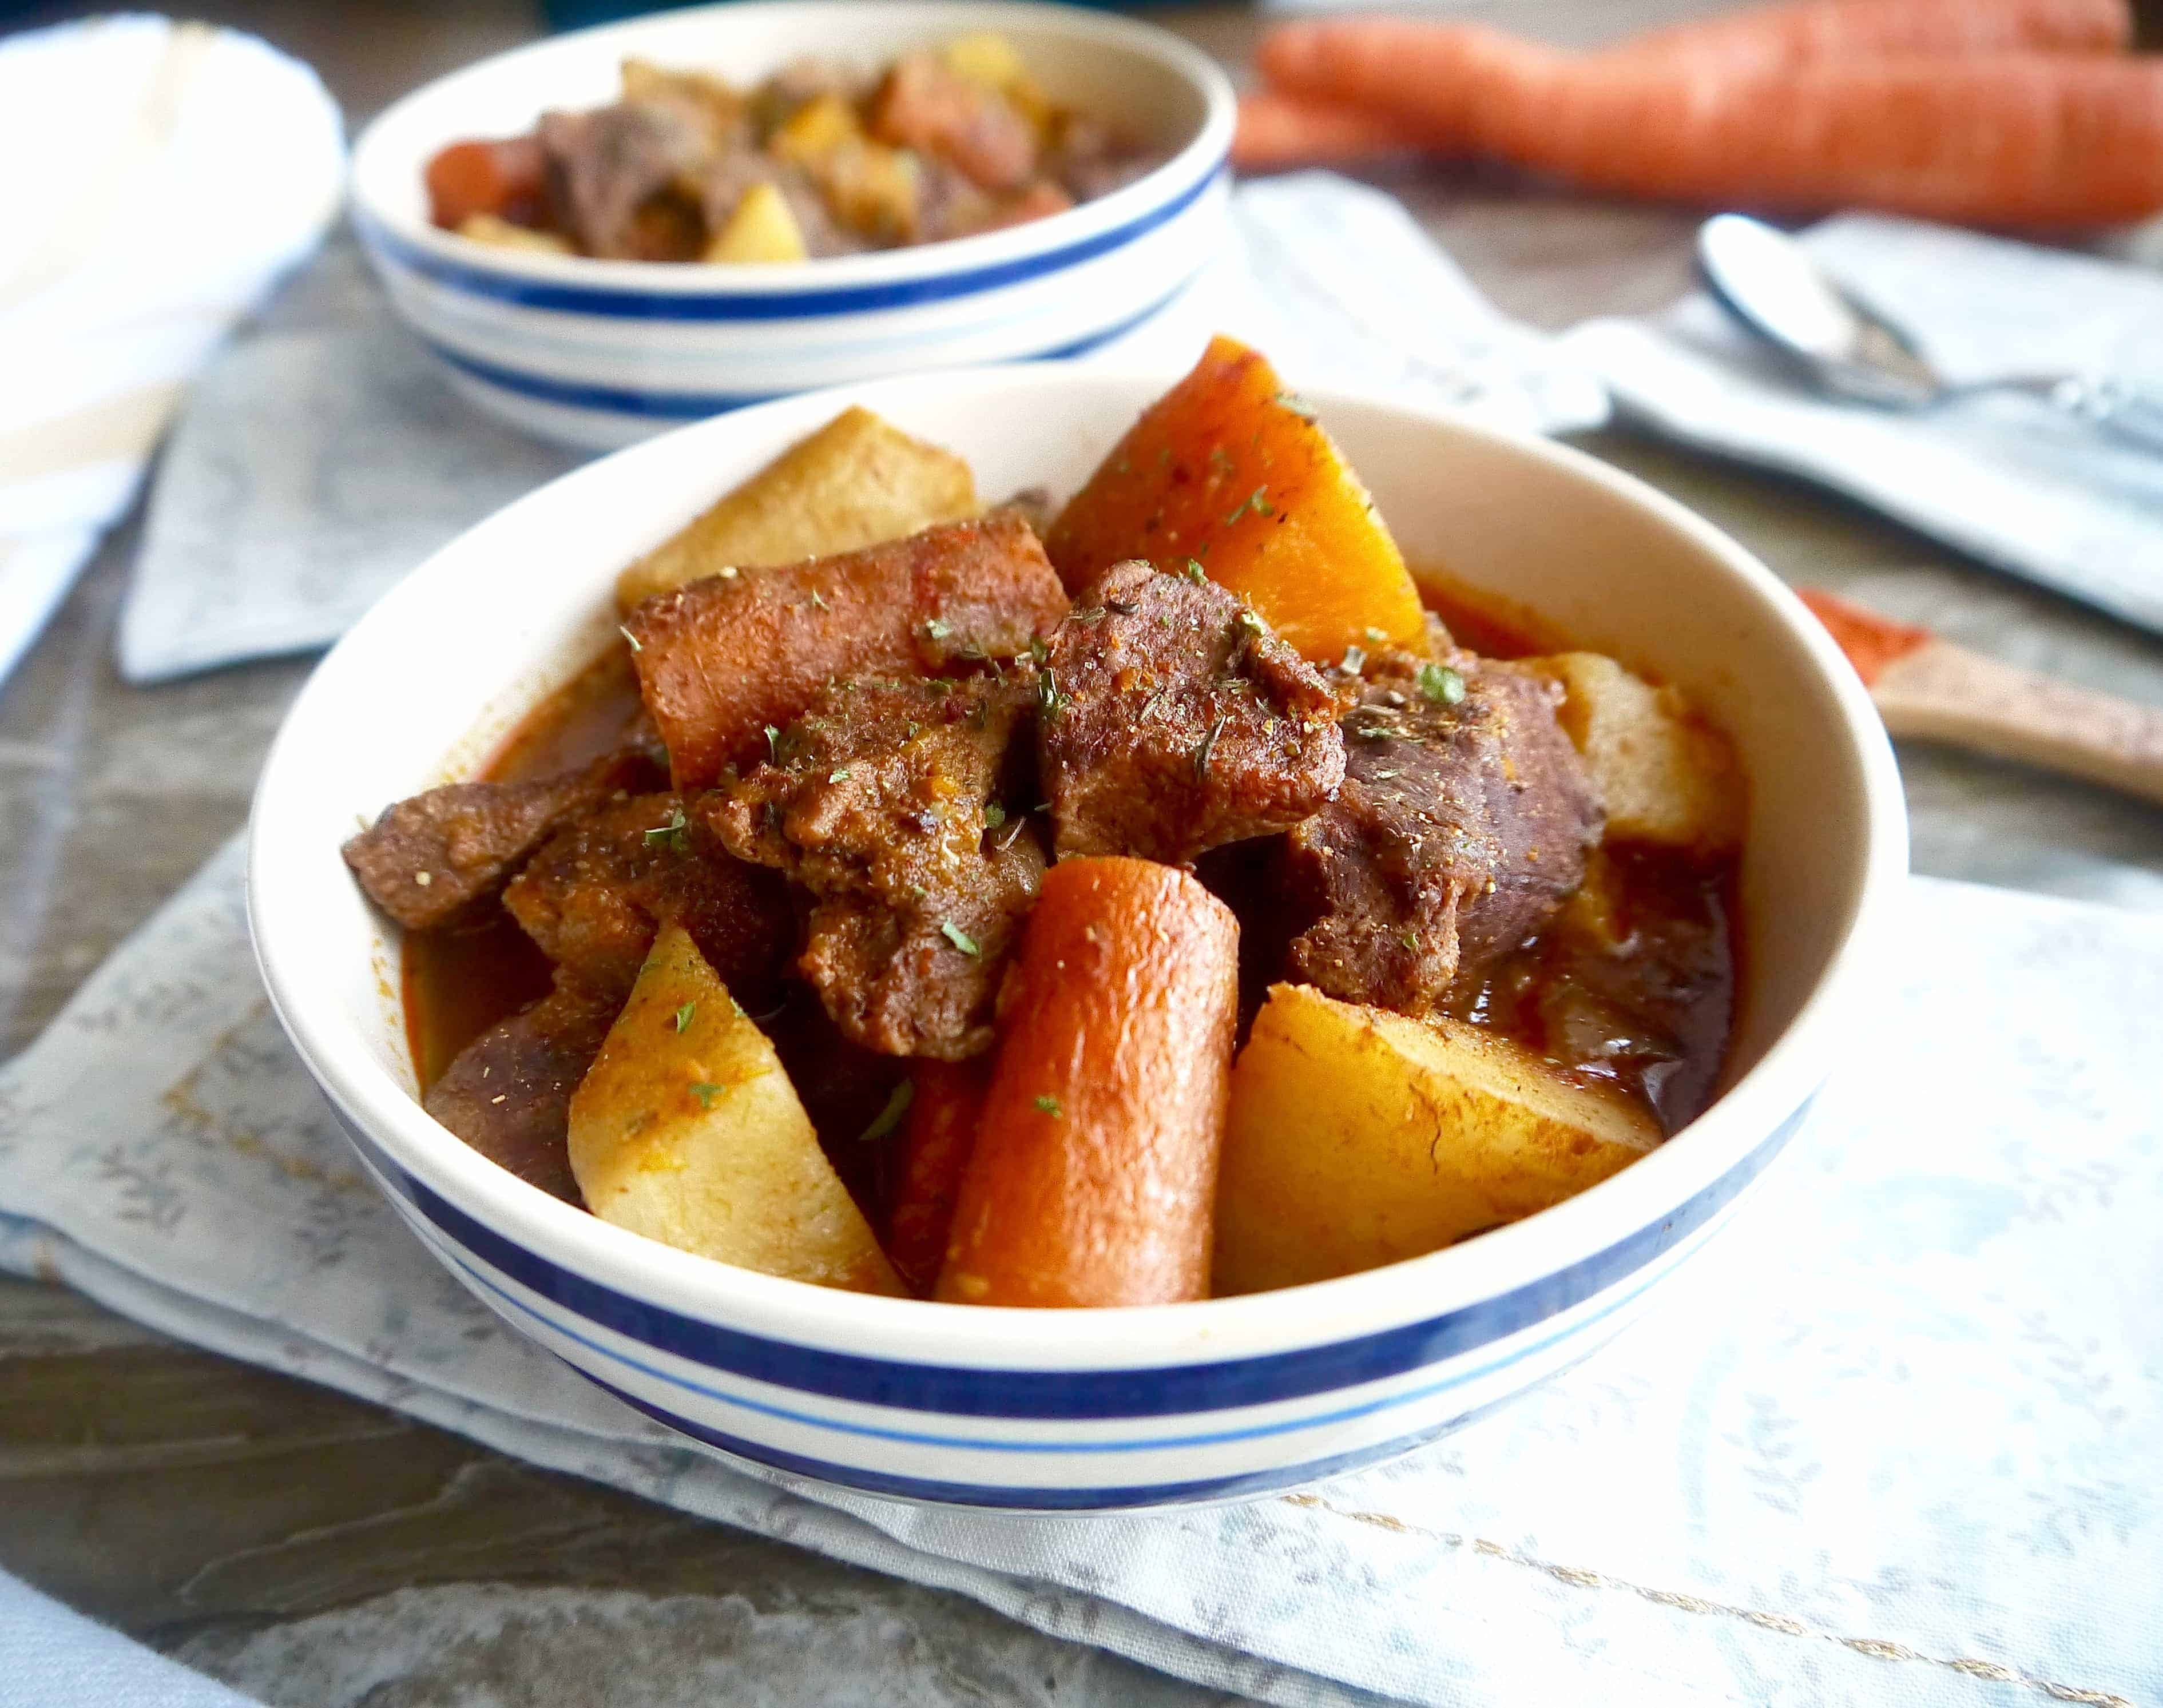 Hearty Hungarian Beef Stew (paleo, GF) |Perchance to Cook, www.perchancetocook.com